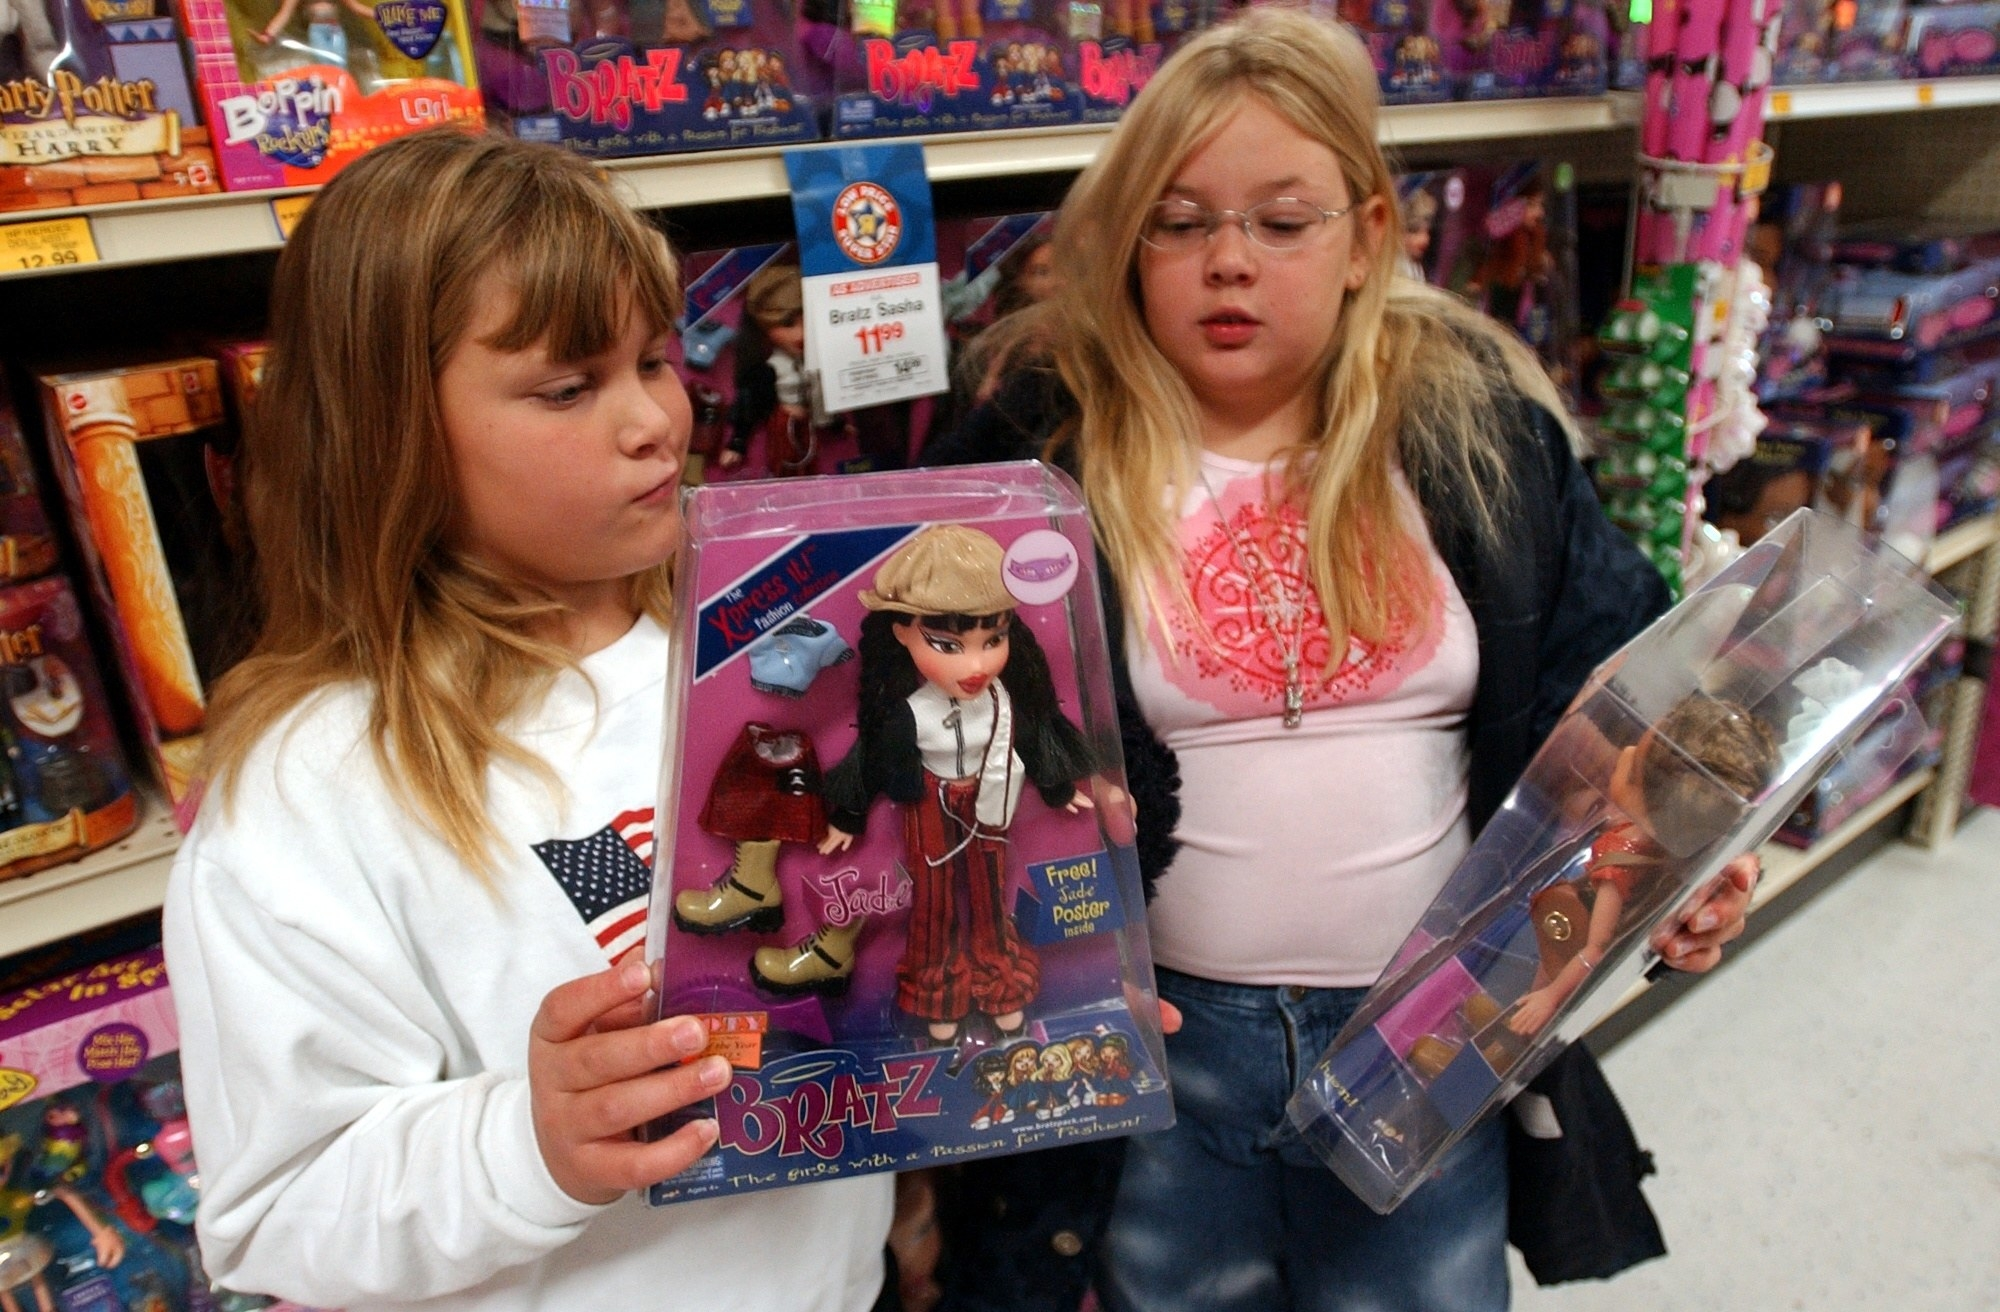 Two girls reading the back of Bratz doll box